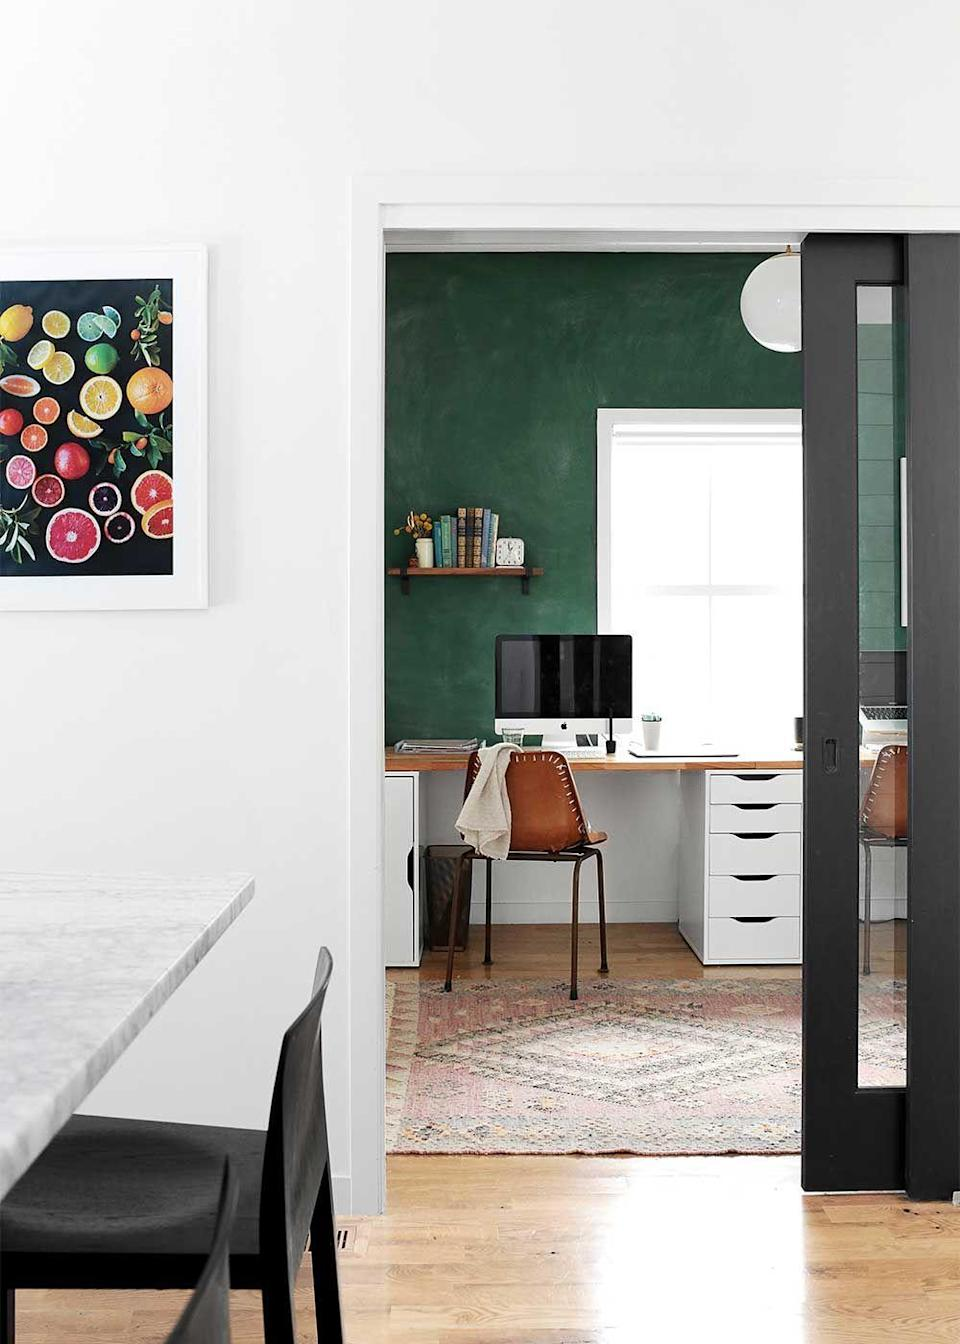 """<p>Give the room a warm and inviting feel by painting one of the walls a rich hue like hunter green, navy, or whichever color best matches your accessories. </p><p><em><a href=""""https://www.thefauxmartha.com/2016/02/26/schoolhouse-green-office/"""" rel=""""nofollow noopener"""" target=""""_blank"""" data-ylk=""""slk:See more at The Faux Martha »"""" class=""""link rapid-noclick-resp"""">See more at The Faux Martha »</a></em><strong><br></strong></p><p><strong>RELATED:</strong> <a href=""""https://www.goodhousekeeping.com/home-products/interior-paint-reviews/g2308/interior-paints/"""" rel=""""nofollow noopener"""" target=""""_blank"""" data-ylk=""""slk:The Best Interior Paint You Can Buy"""" class=""""link rapid-noclick-resp"""">The Best Interior Paint You Can Buy </a><br></p>"""